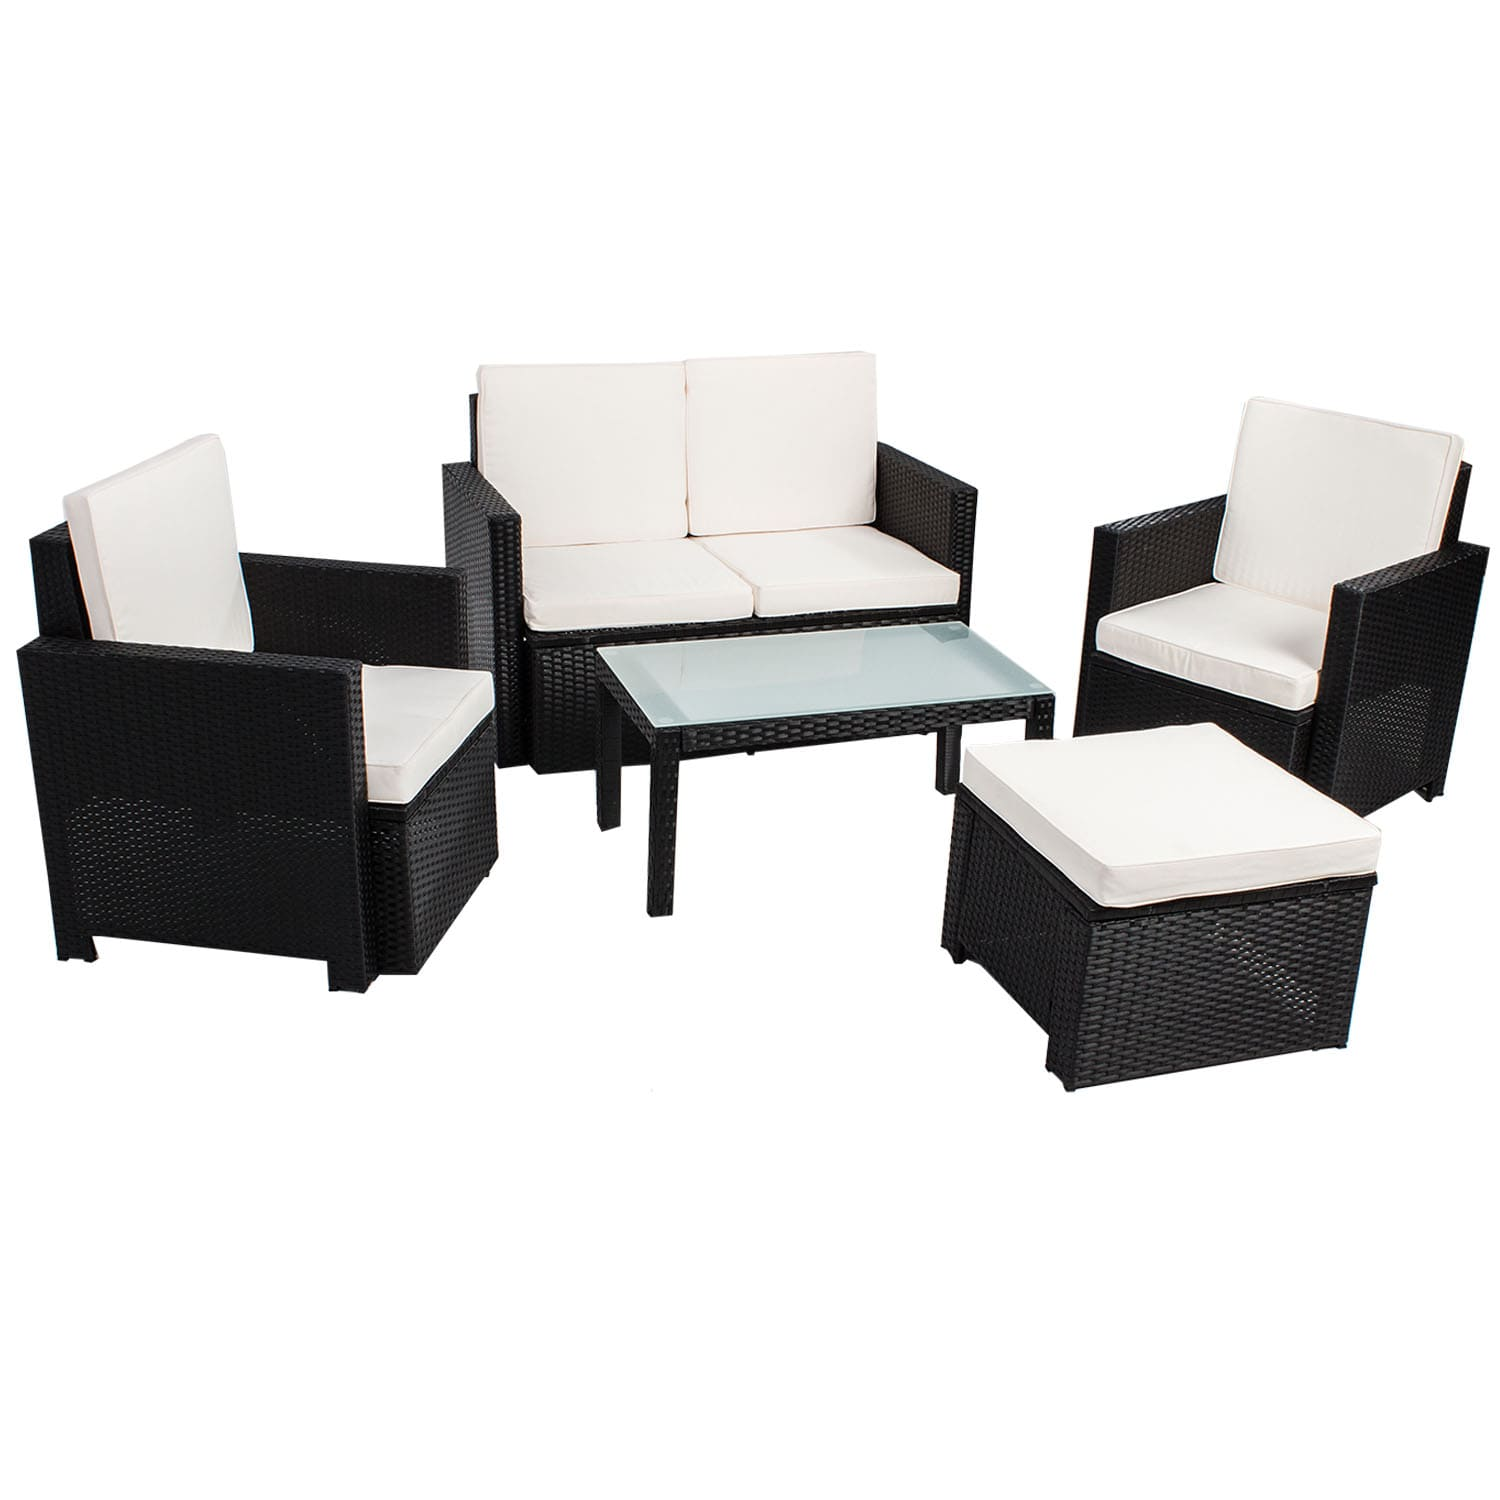 polyrattan gartenm bel sitzgruppe 5 teilig lounge garten rattan. Black Bedroom Furniture Sets. Home Design Ideas